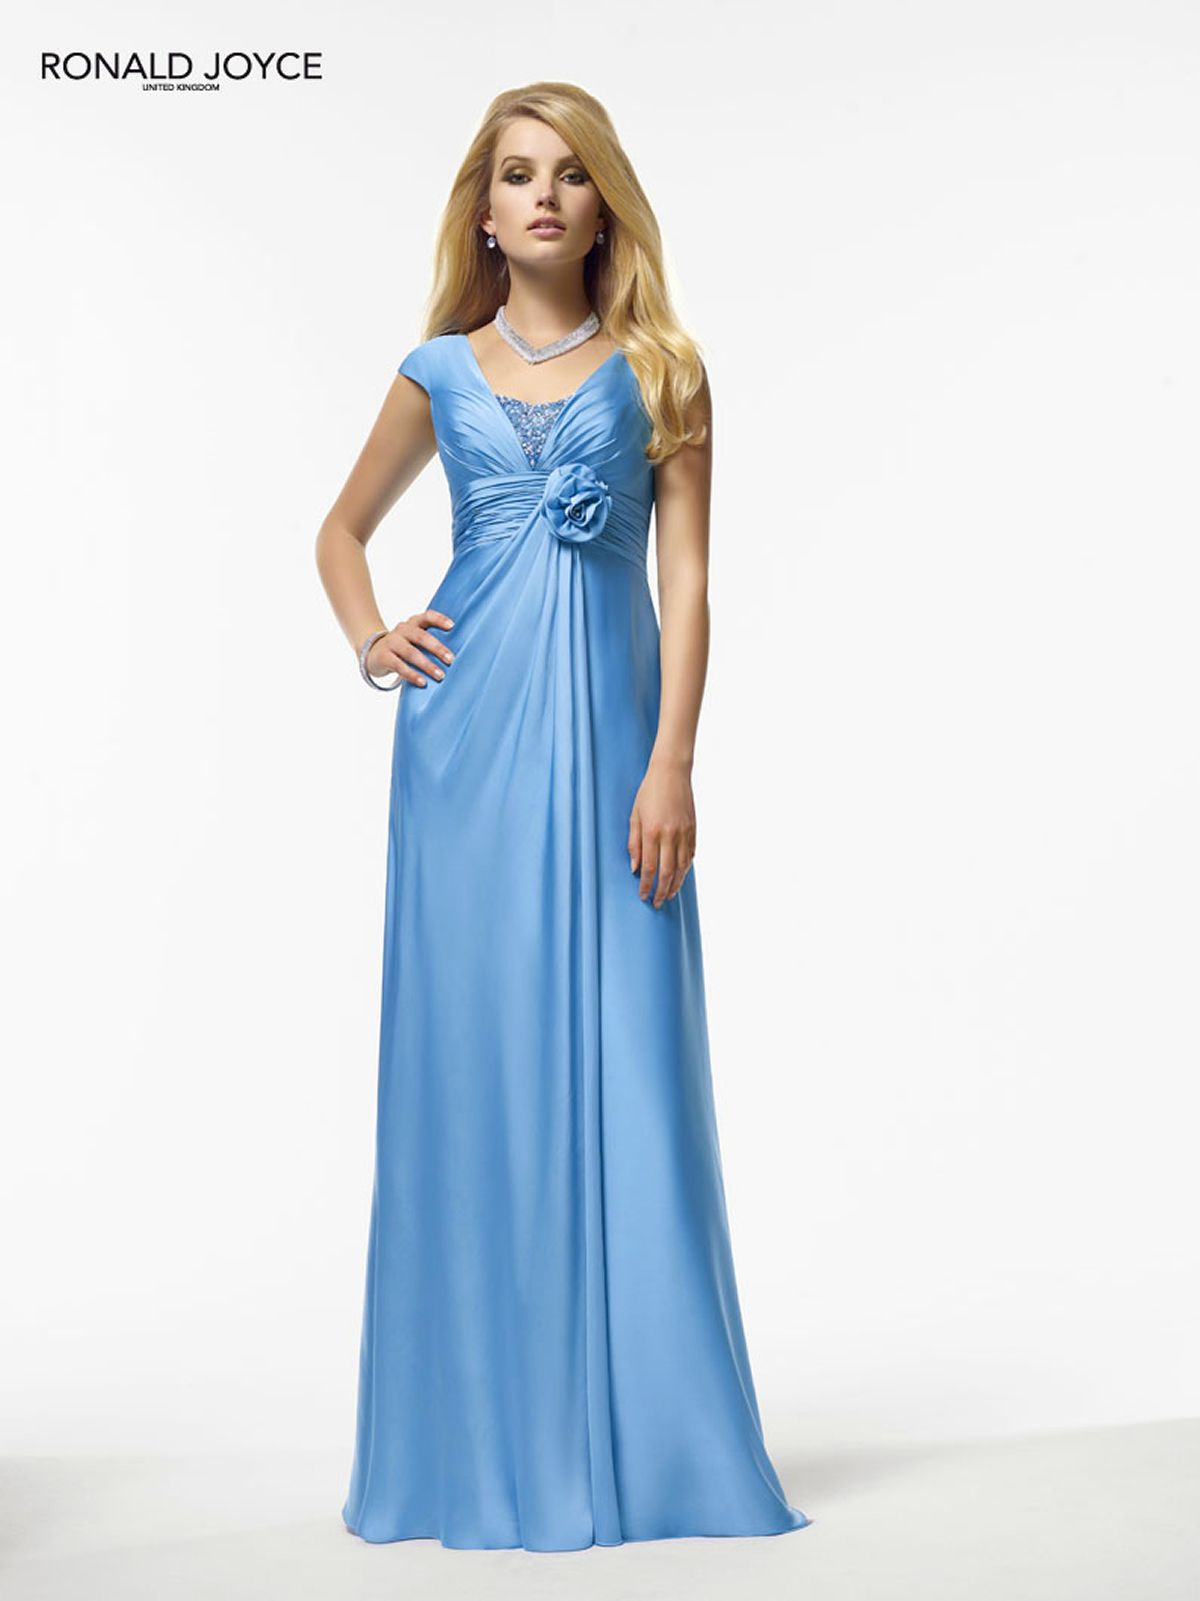 Wedding gown color blue  Ronald Joyce like the style maybe different color  My  wedding